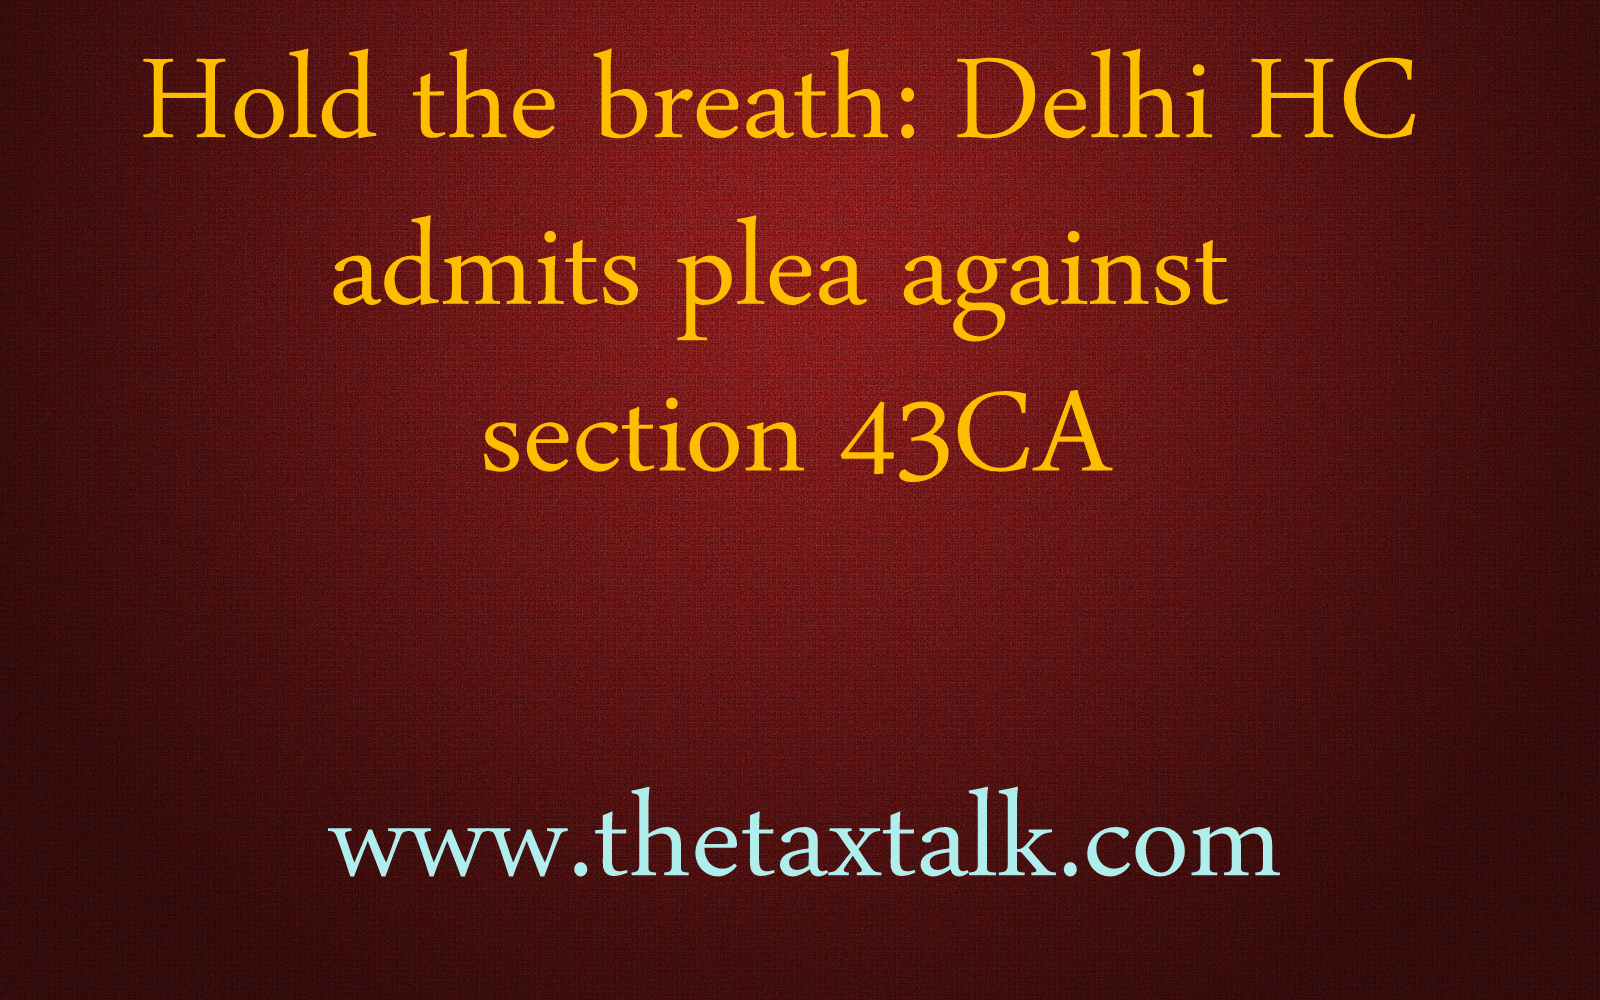 Hold the breath: Delhi HC admits plea against section 43CA